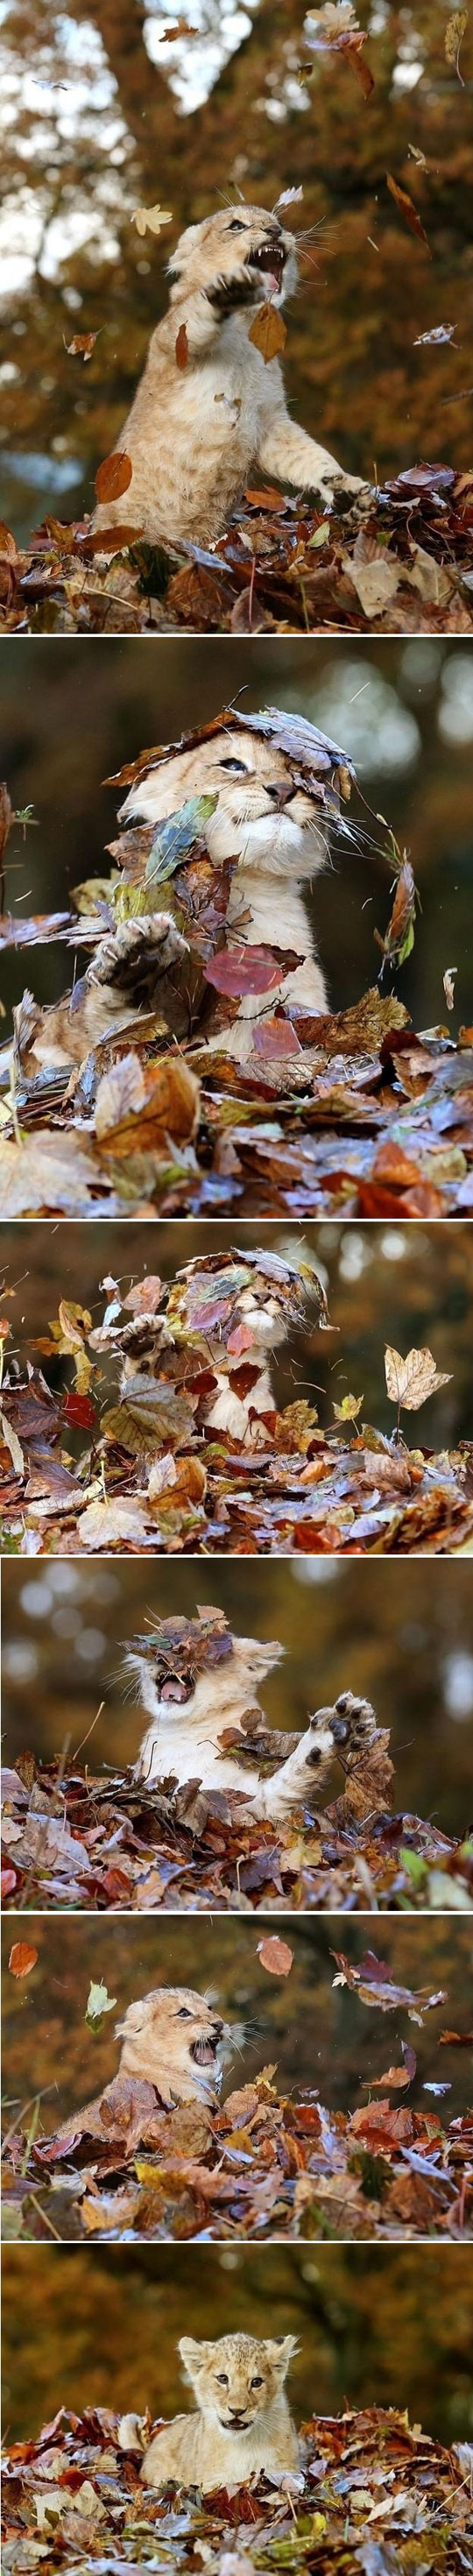 Baby Lion Playing With Leaves